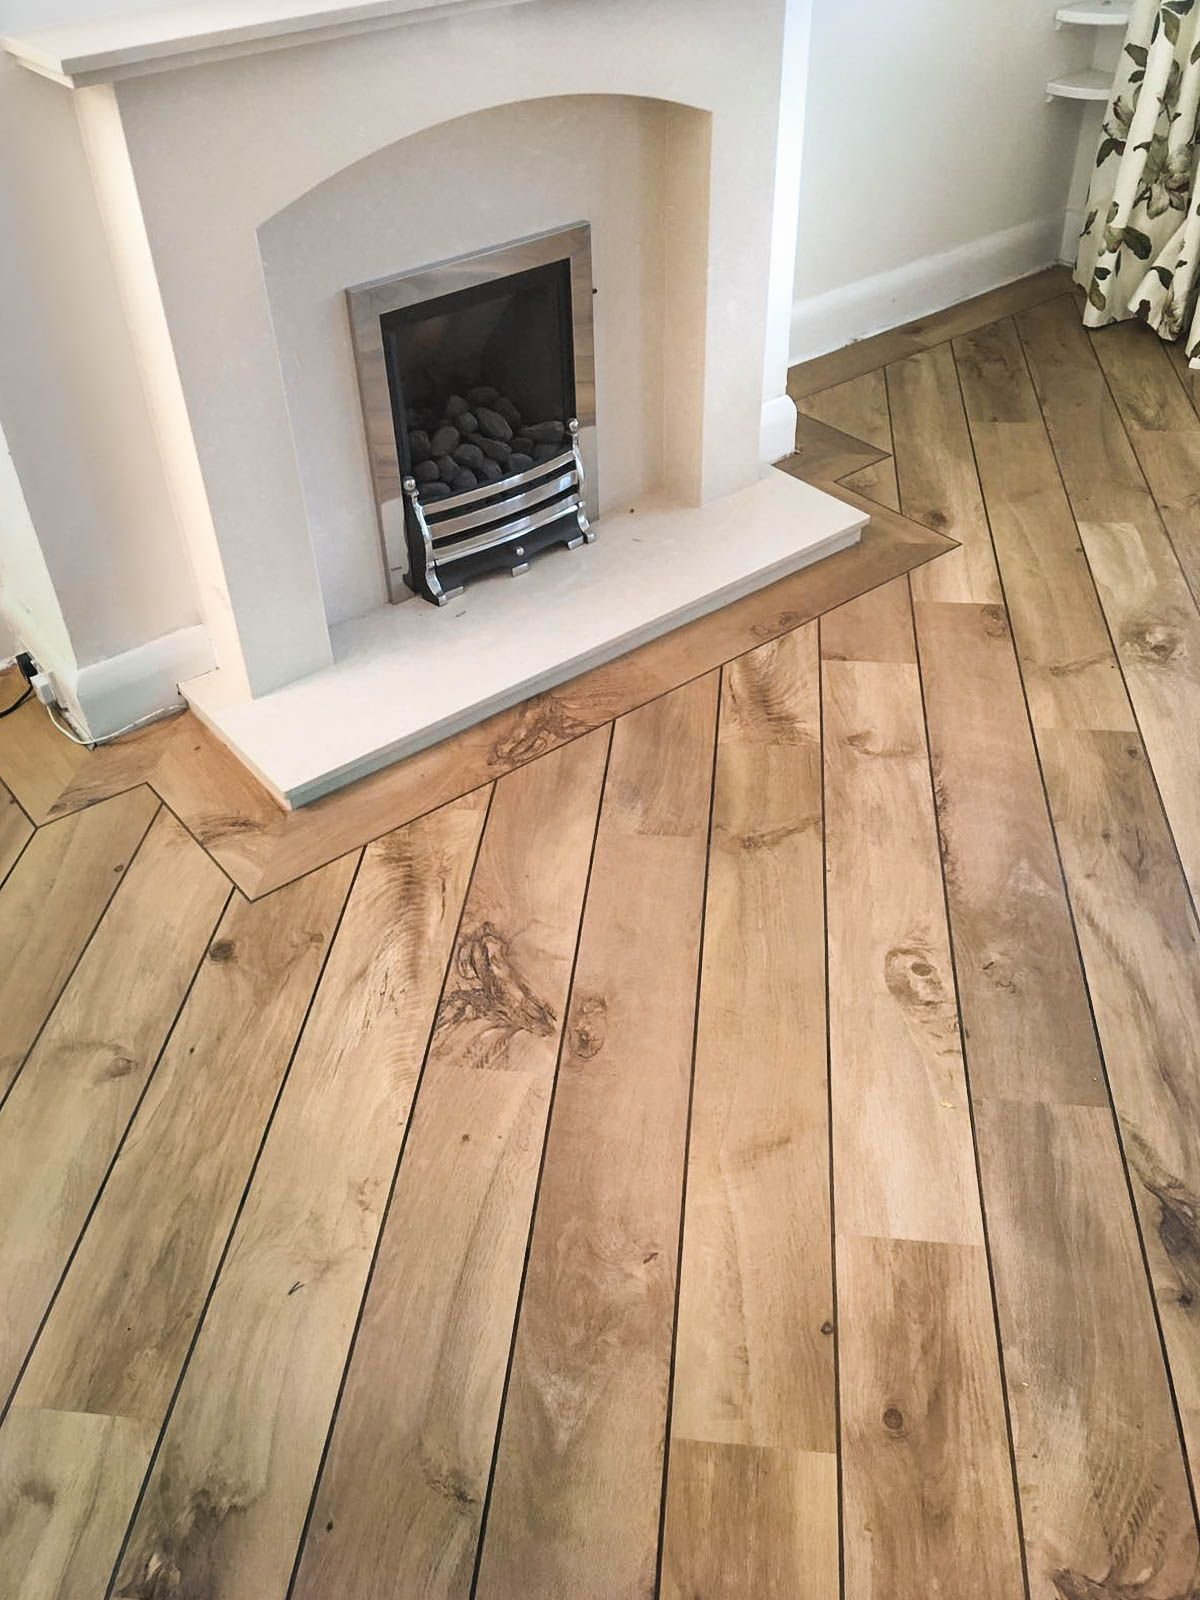 Recently Completed Living Room With Karndean Designflooring Van Gogh Range Install With A Ship Deck Effect And A 5m Flooring House Flooring Vinyl Wood Flooring